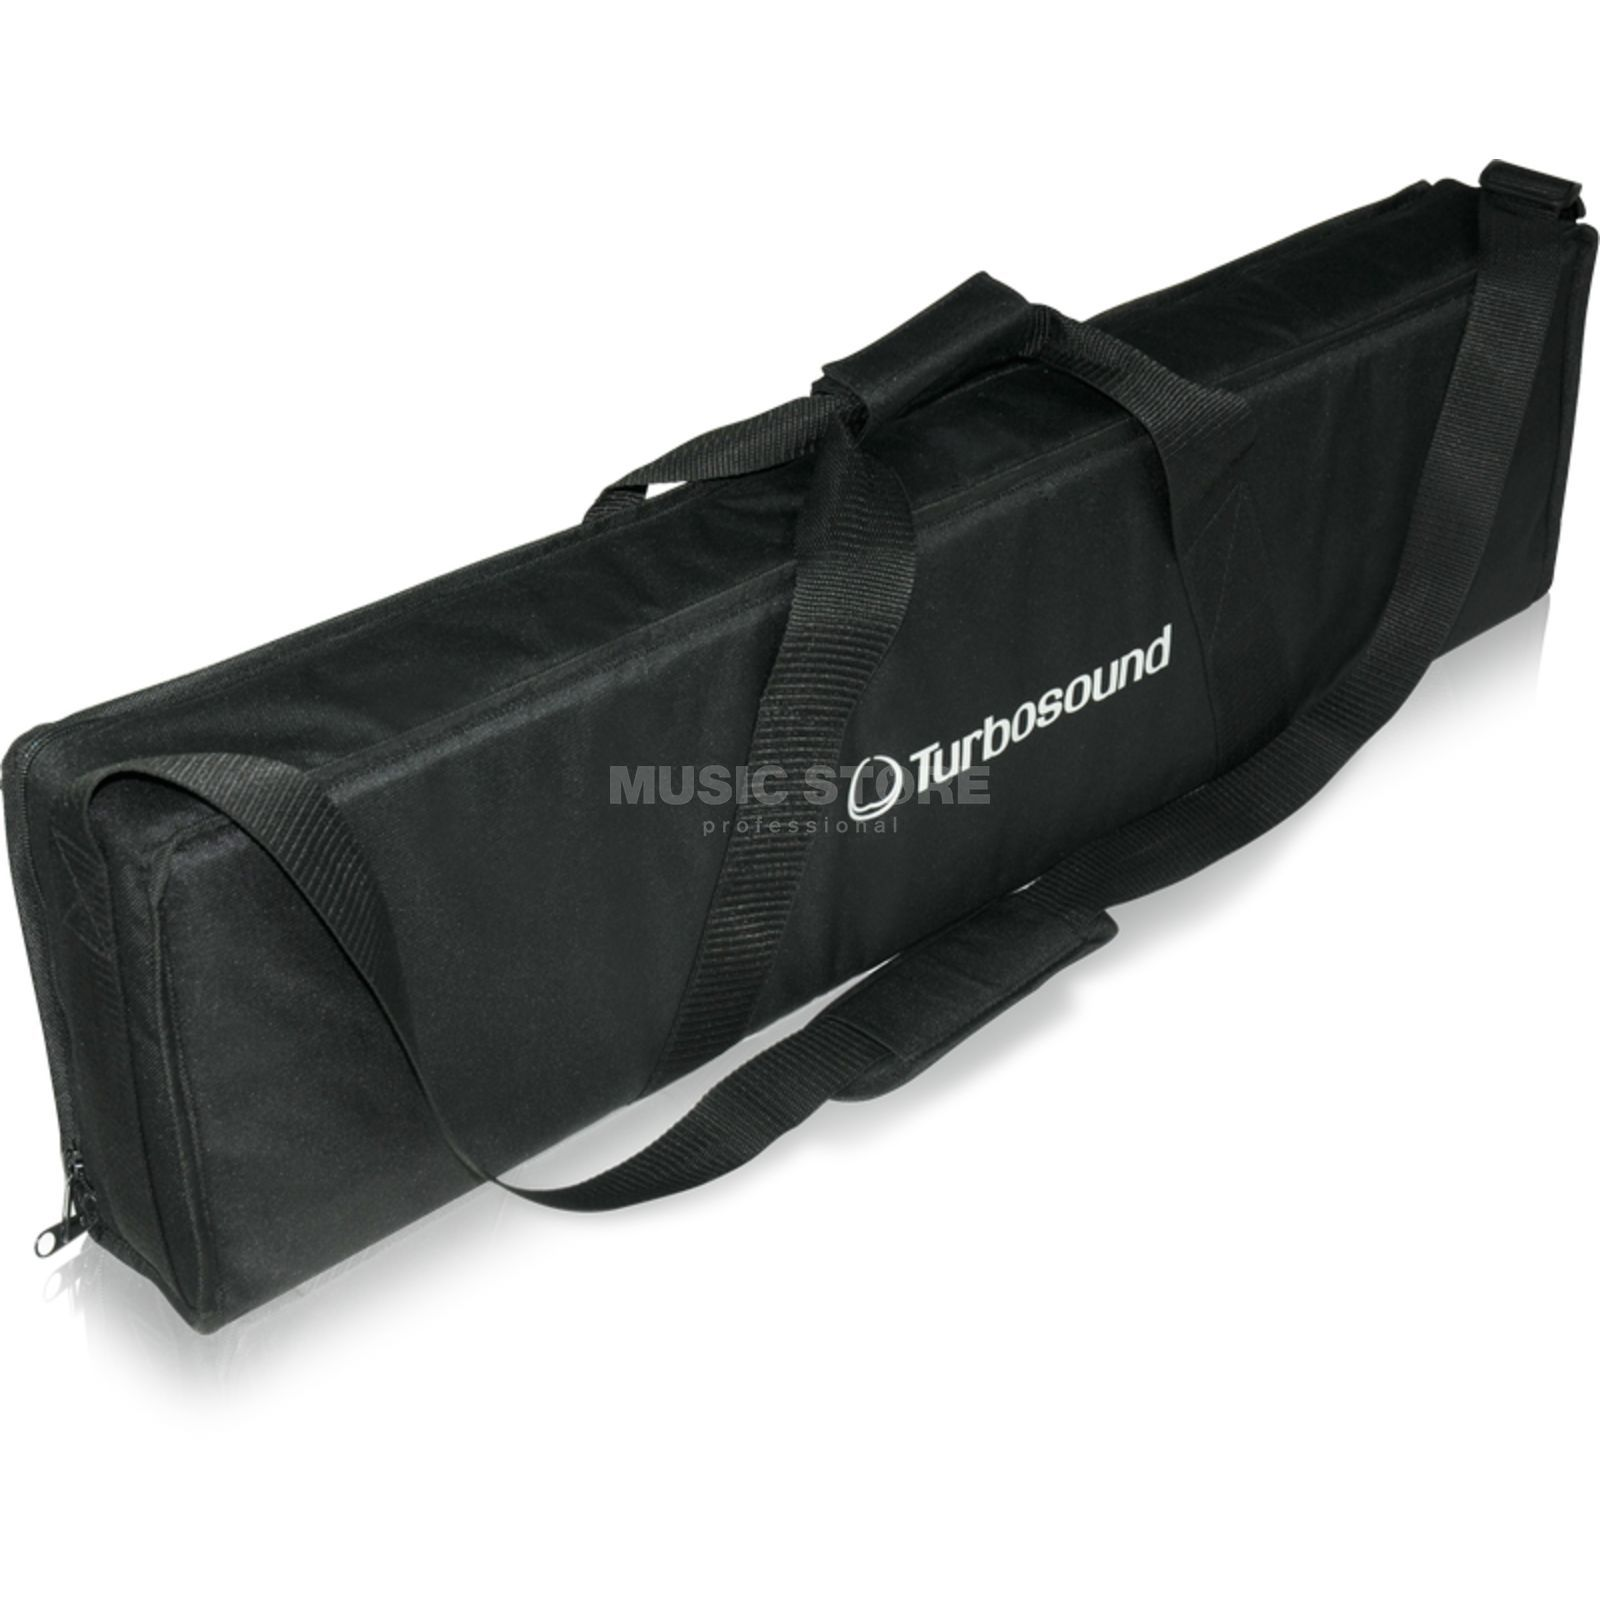 Turbosound iP2000-TB Transport Bag water resistant Product Image